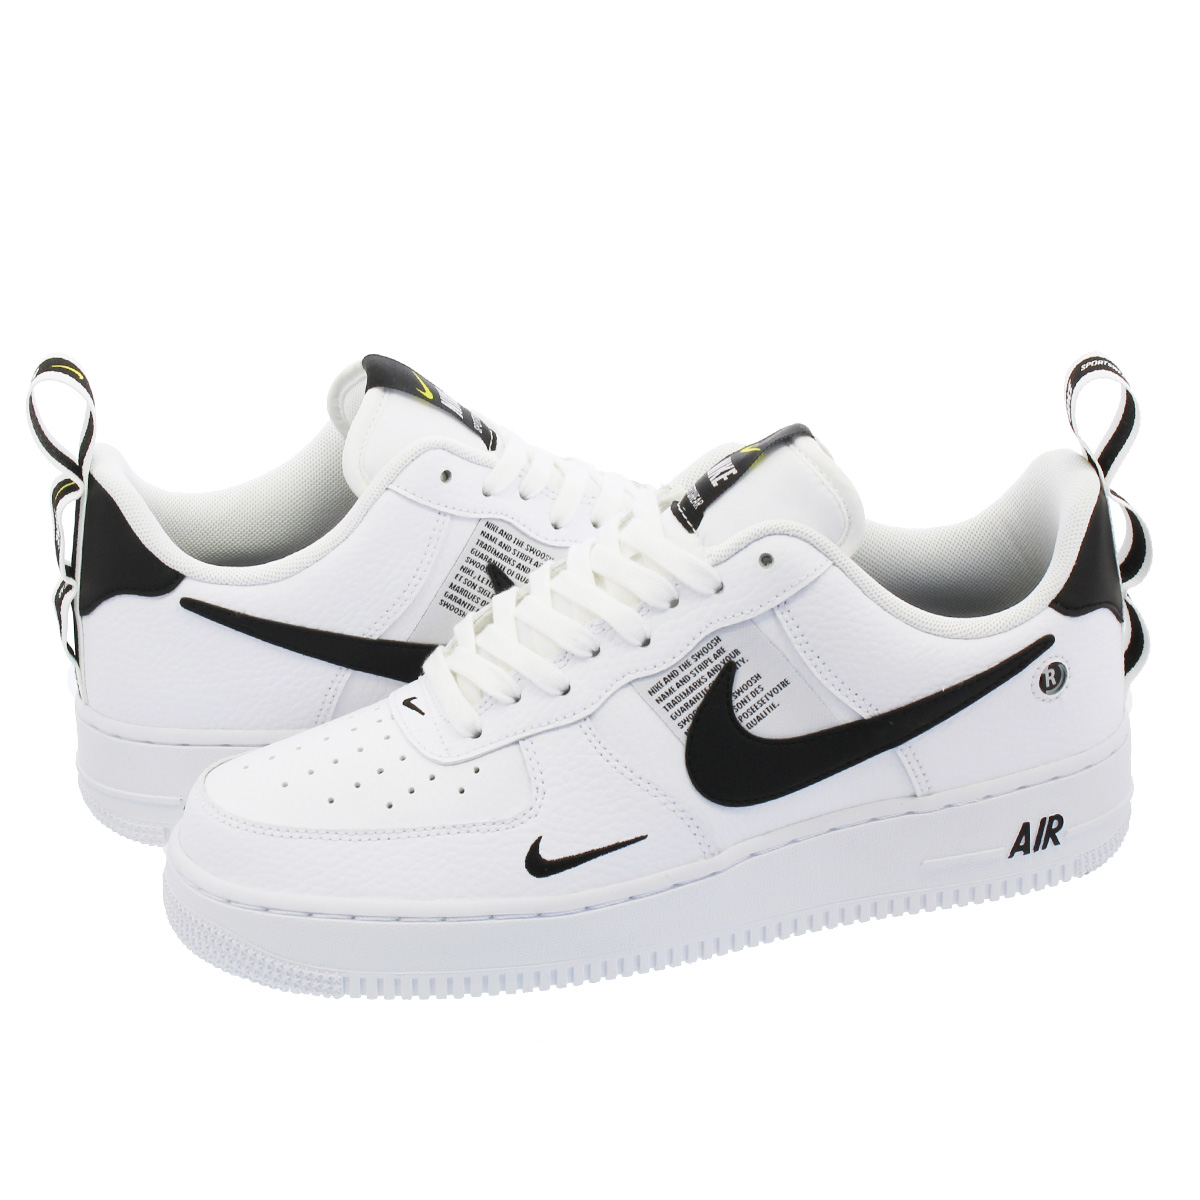 b8b7fb029db8 SELECT SHOP LOWTEX  NIKE AIR FORCE 1  07 LV8 UTILITY Nike air force 1  07  LV8 utility WHITE WHITE BLACK TOUR YELLOW aj7747-100